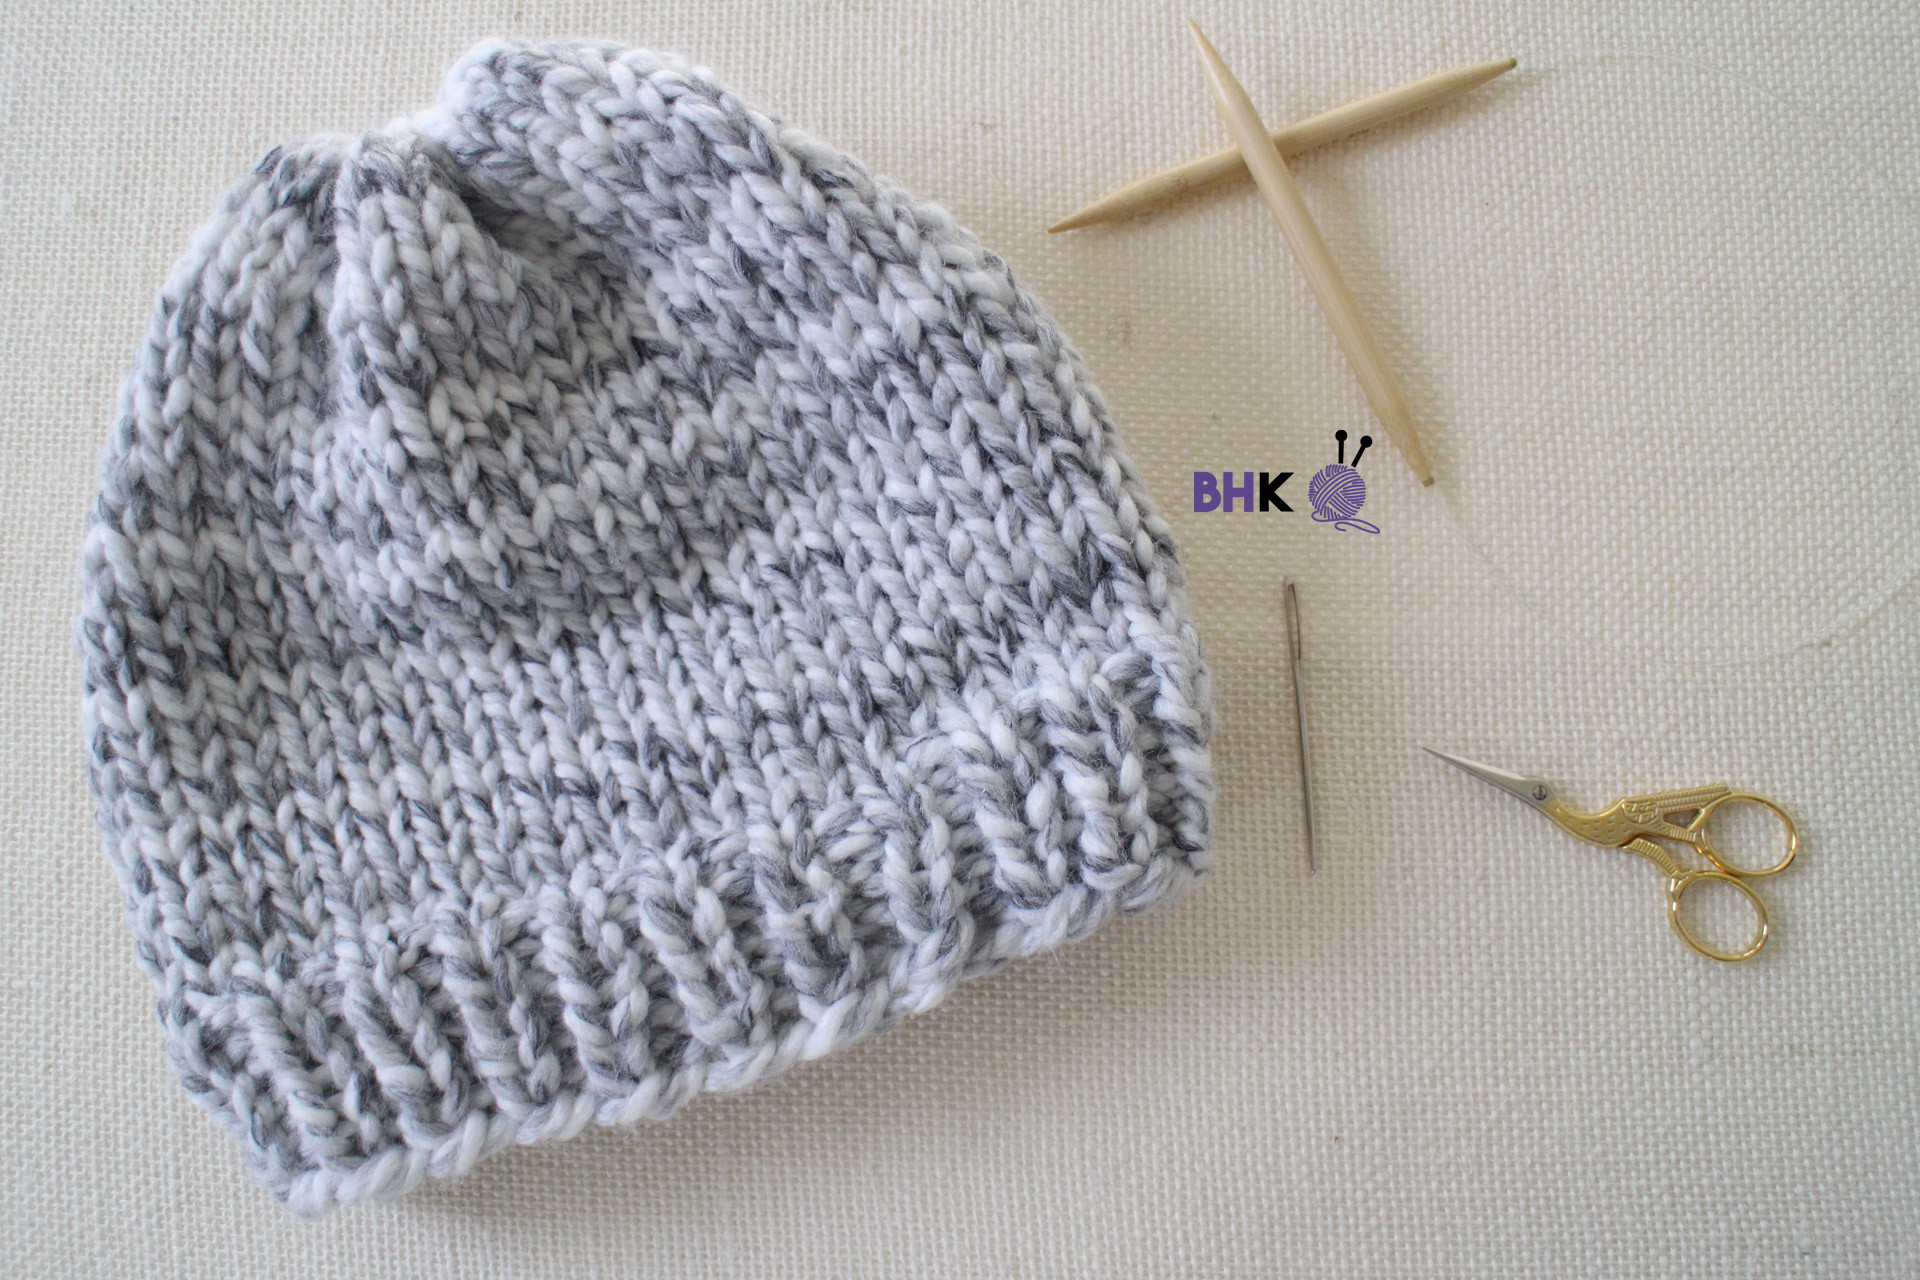 New Easy Knit Hat B Hooked Knitting Easy Knit Hat Of Brilliant 47 Pictures Easy Knit Hat